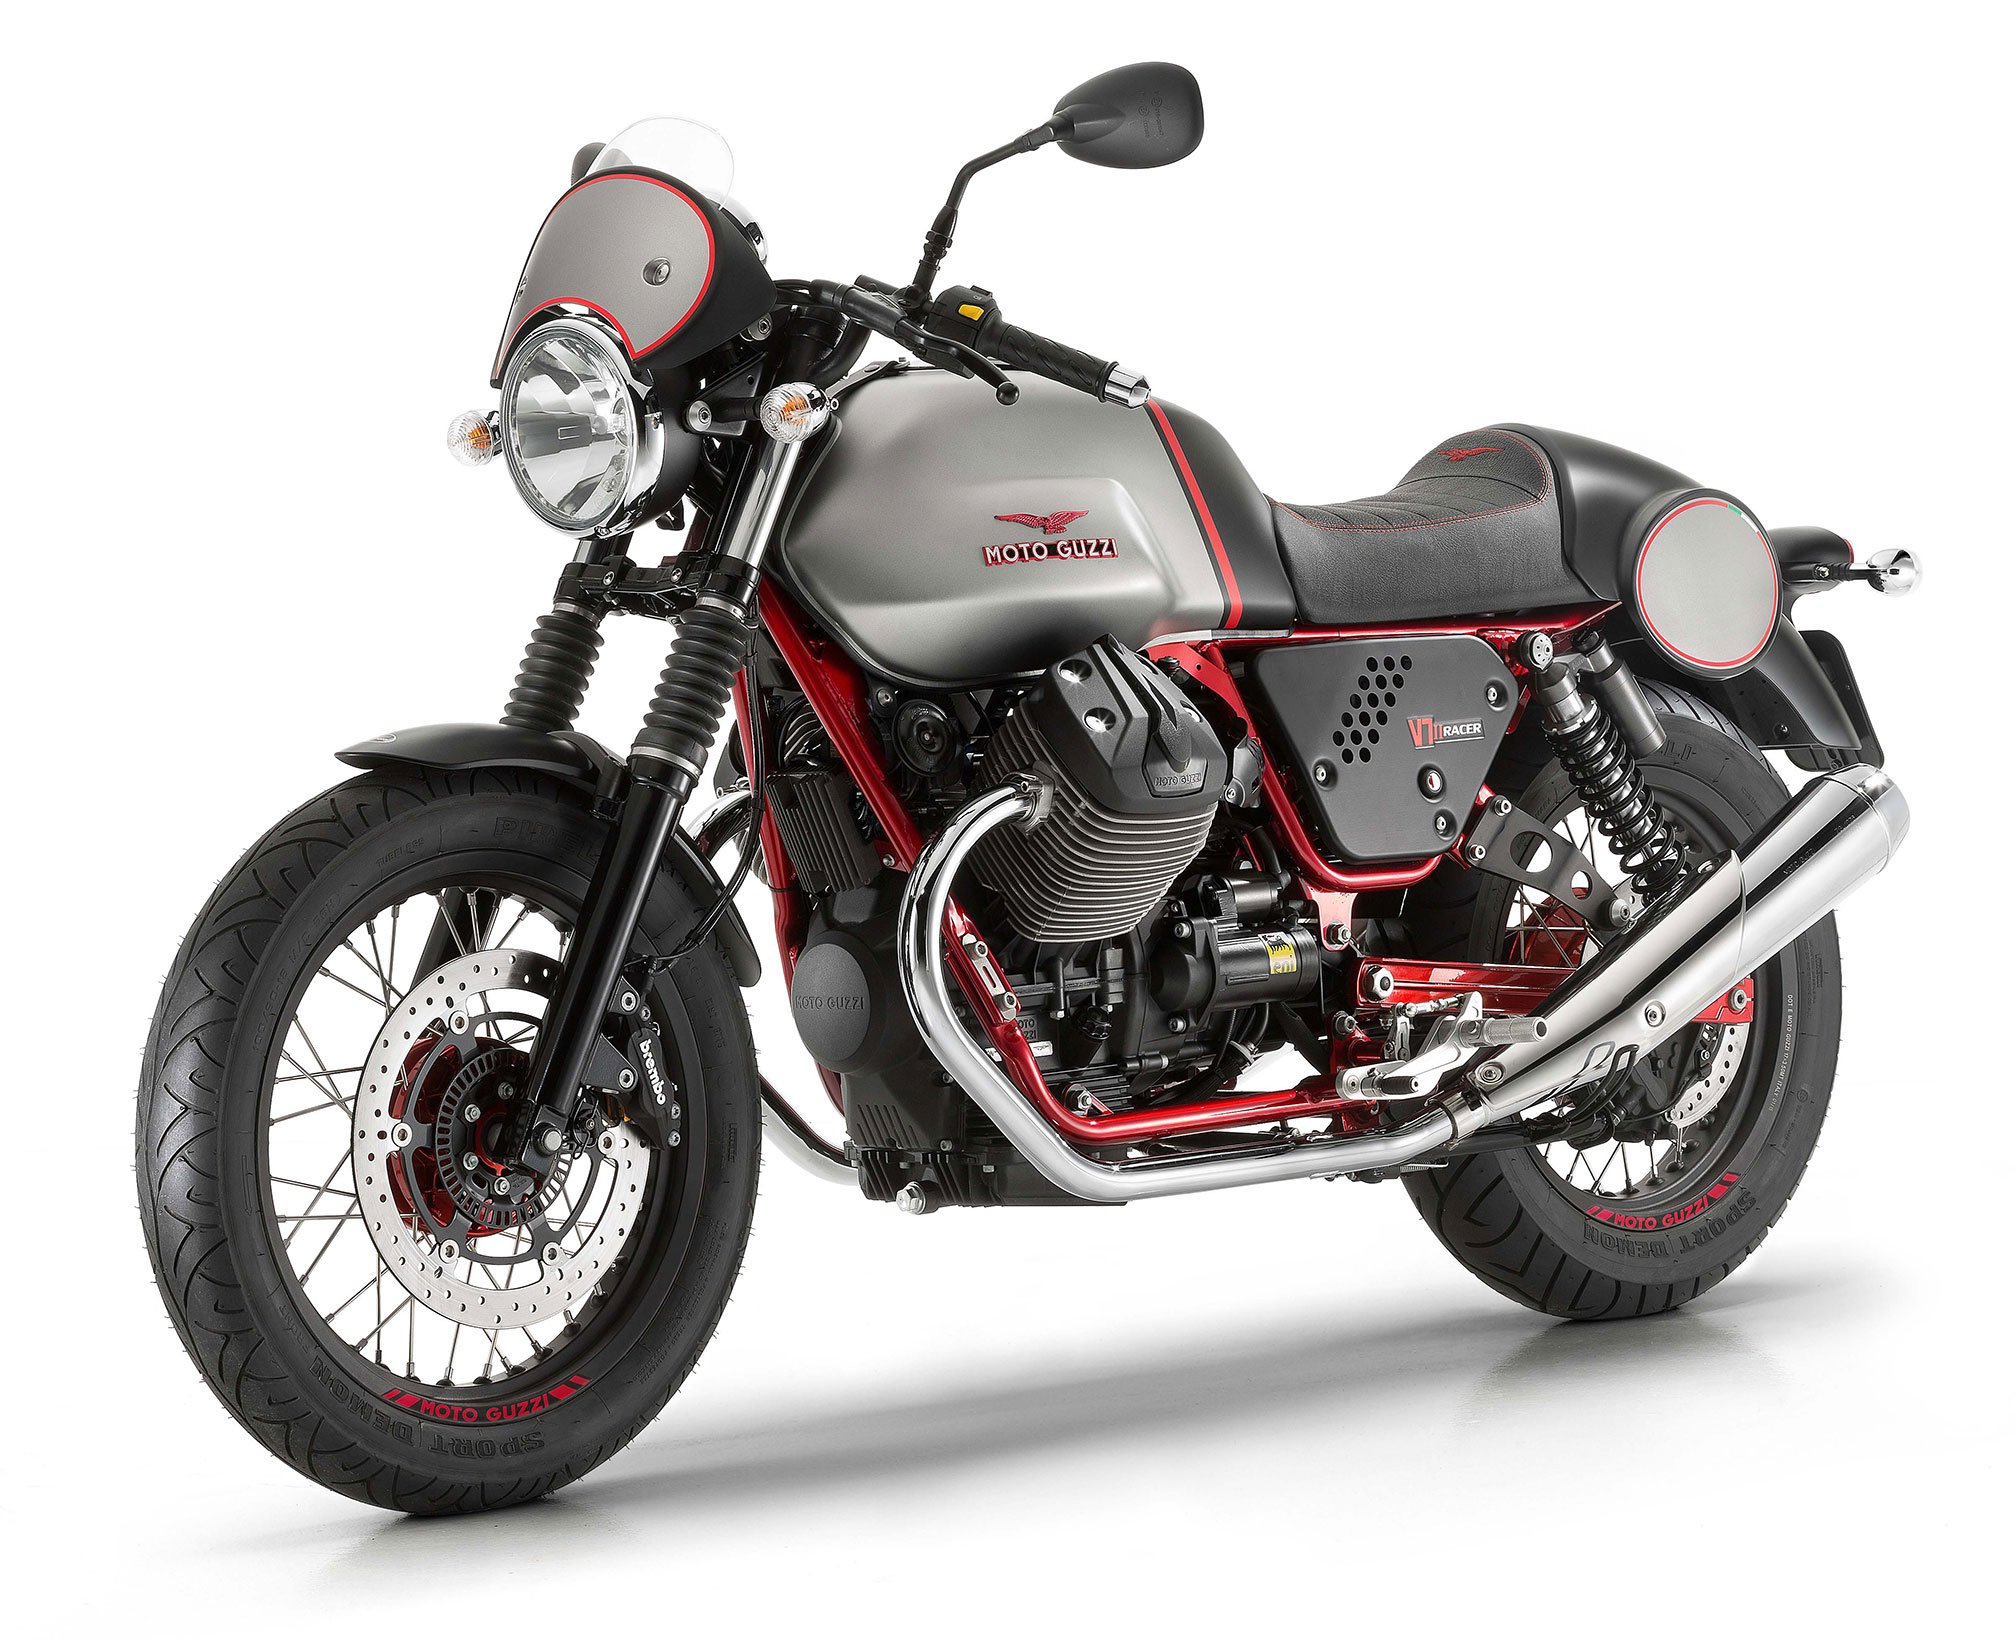 2016 moto guzzi v7 ii racer abs review. Black Bedroom Furniture Sets. Home Design Ideas